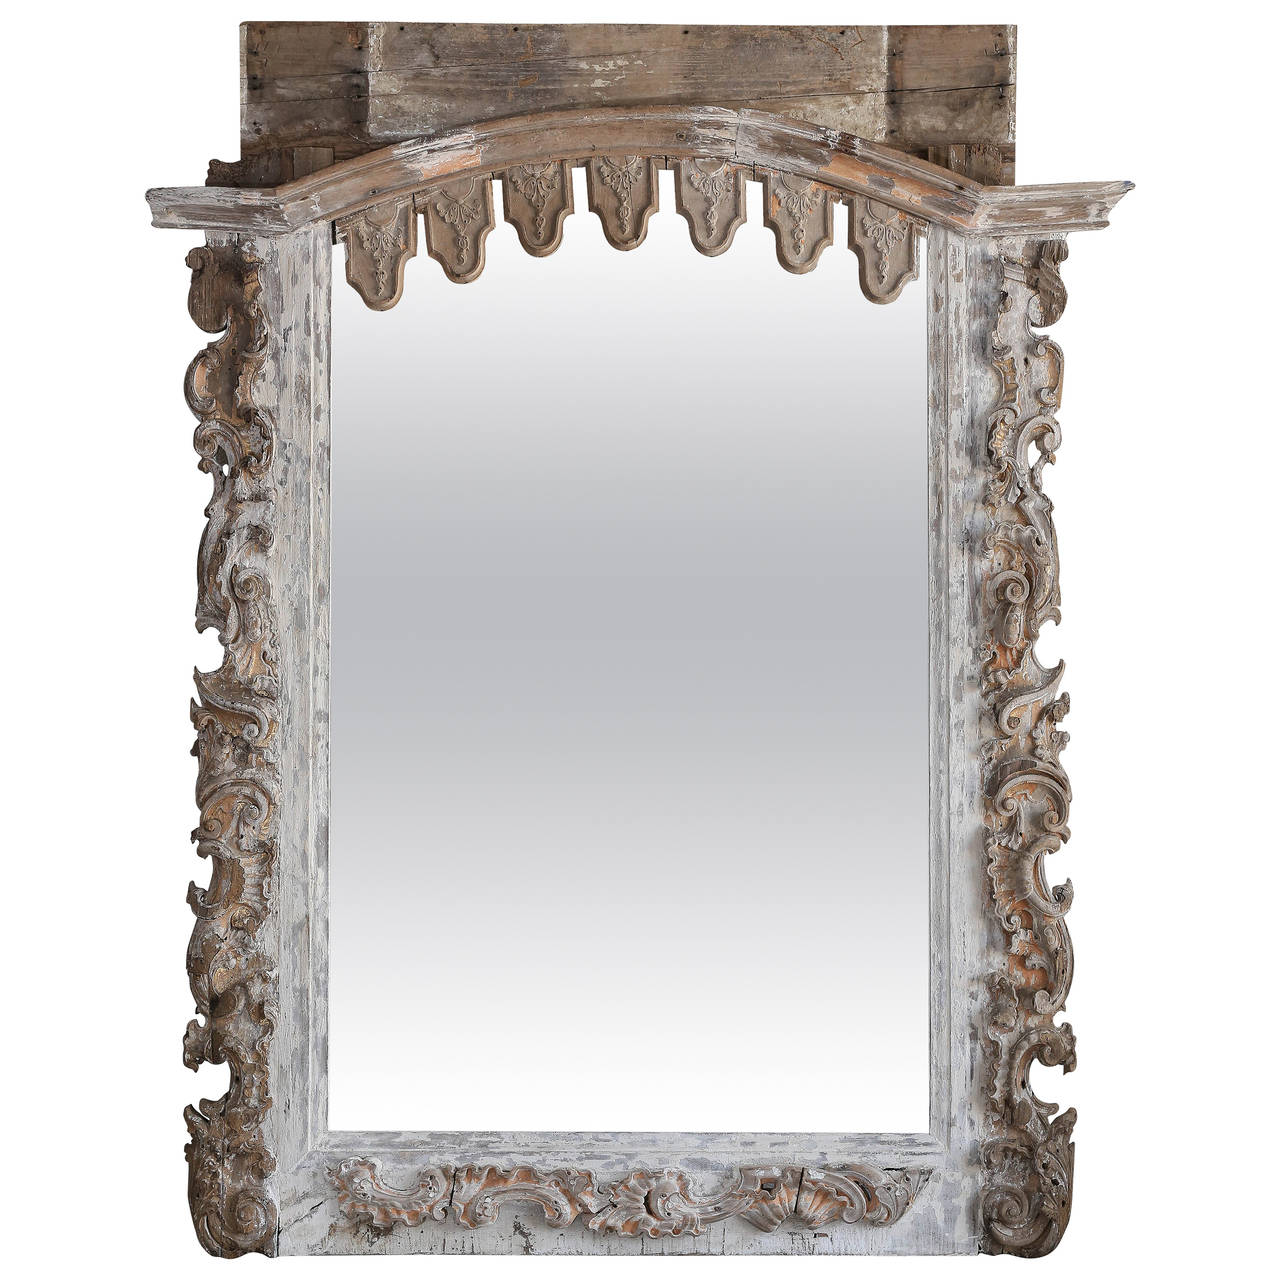 Mirror made with 17th century alter parts at 1stdibs for 17th century mirrors